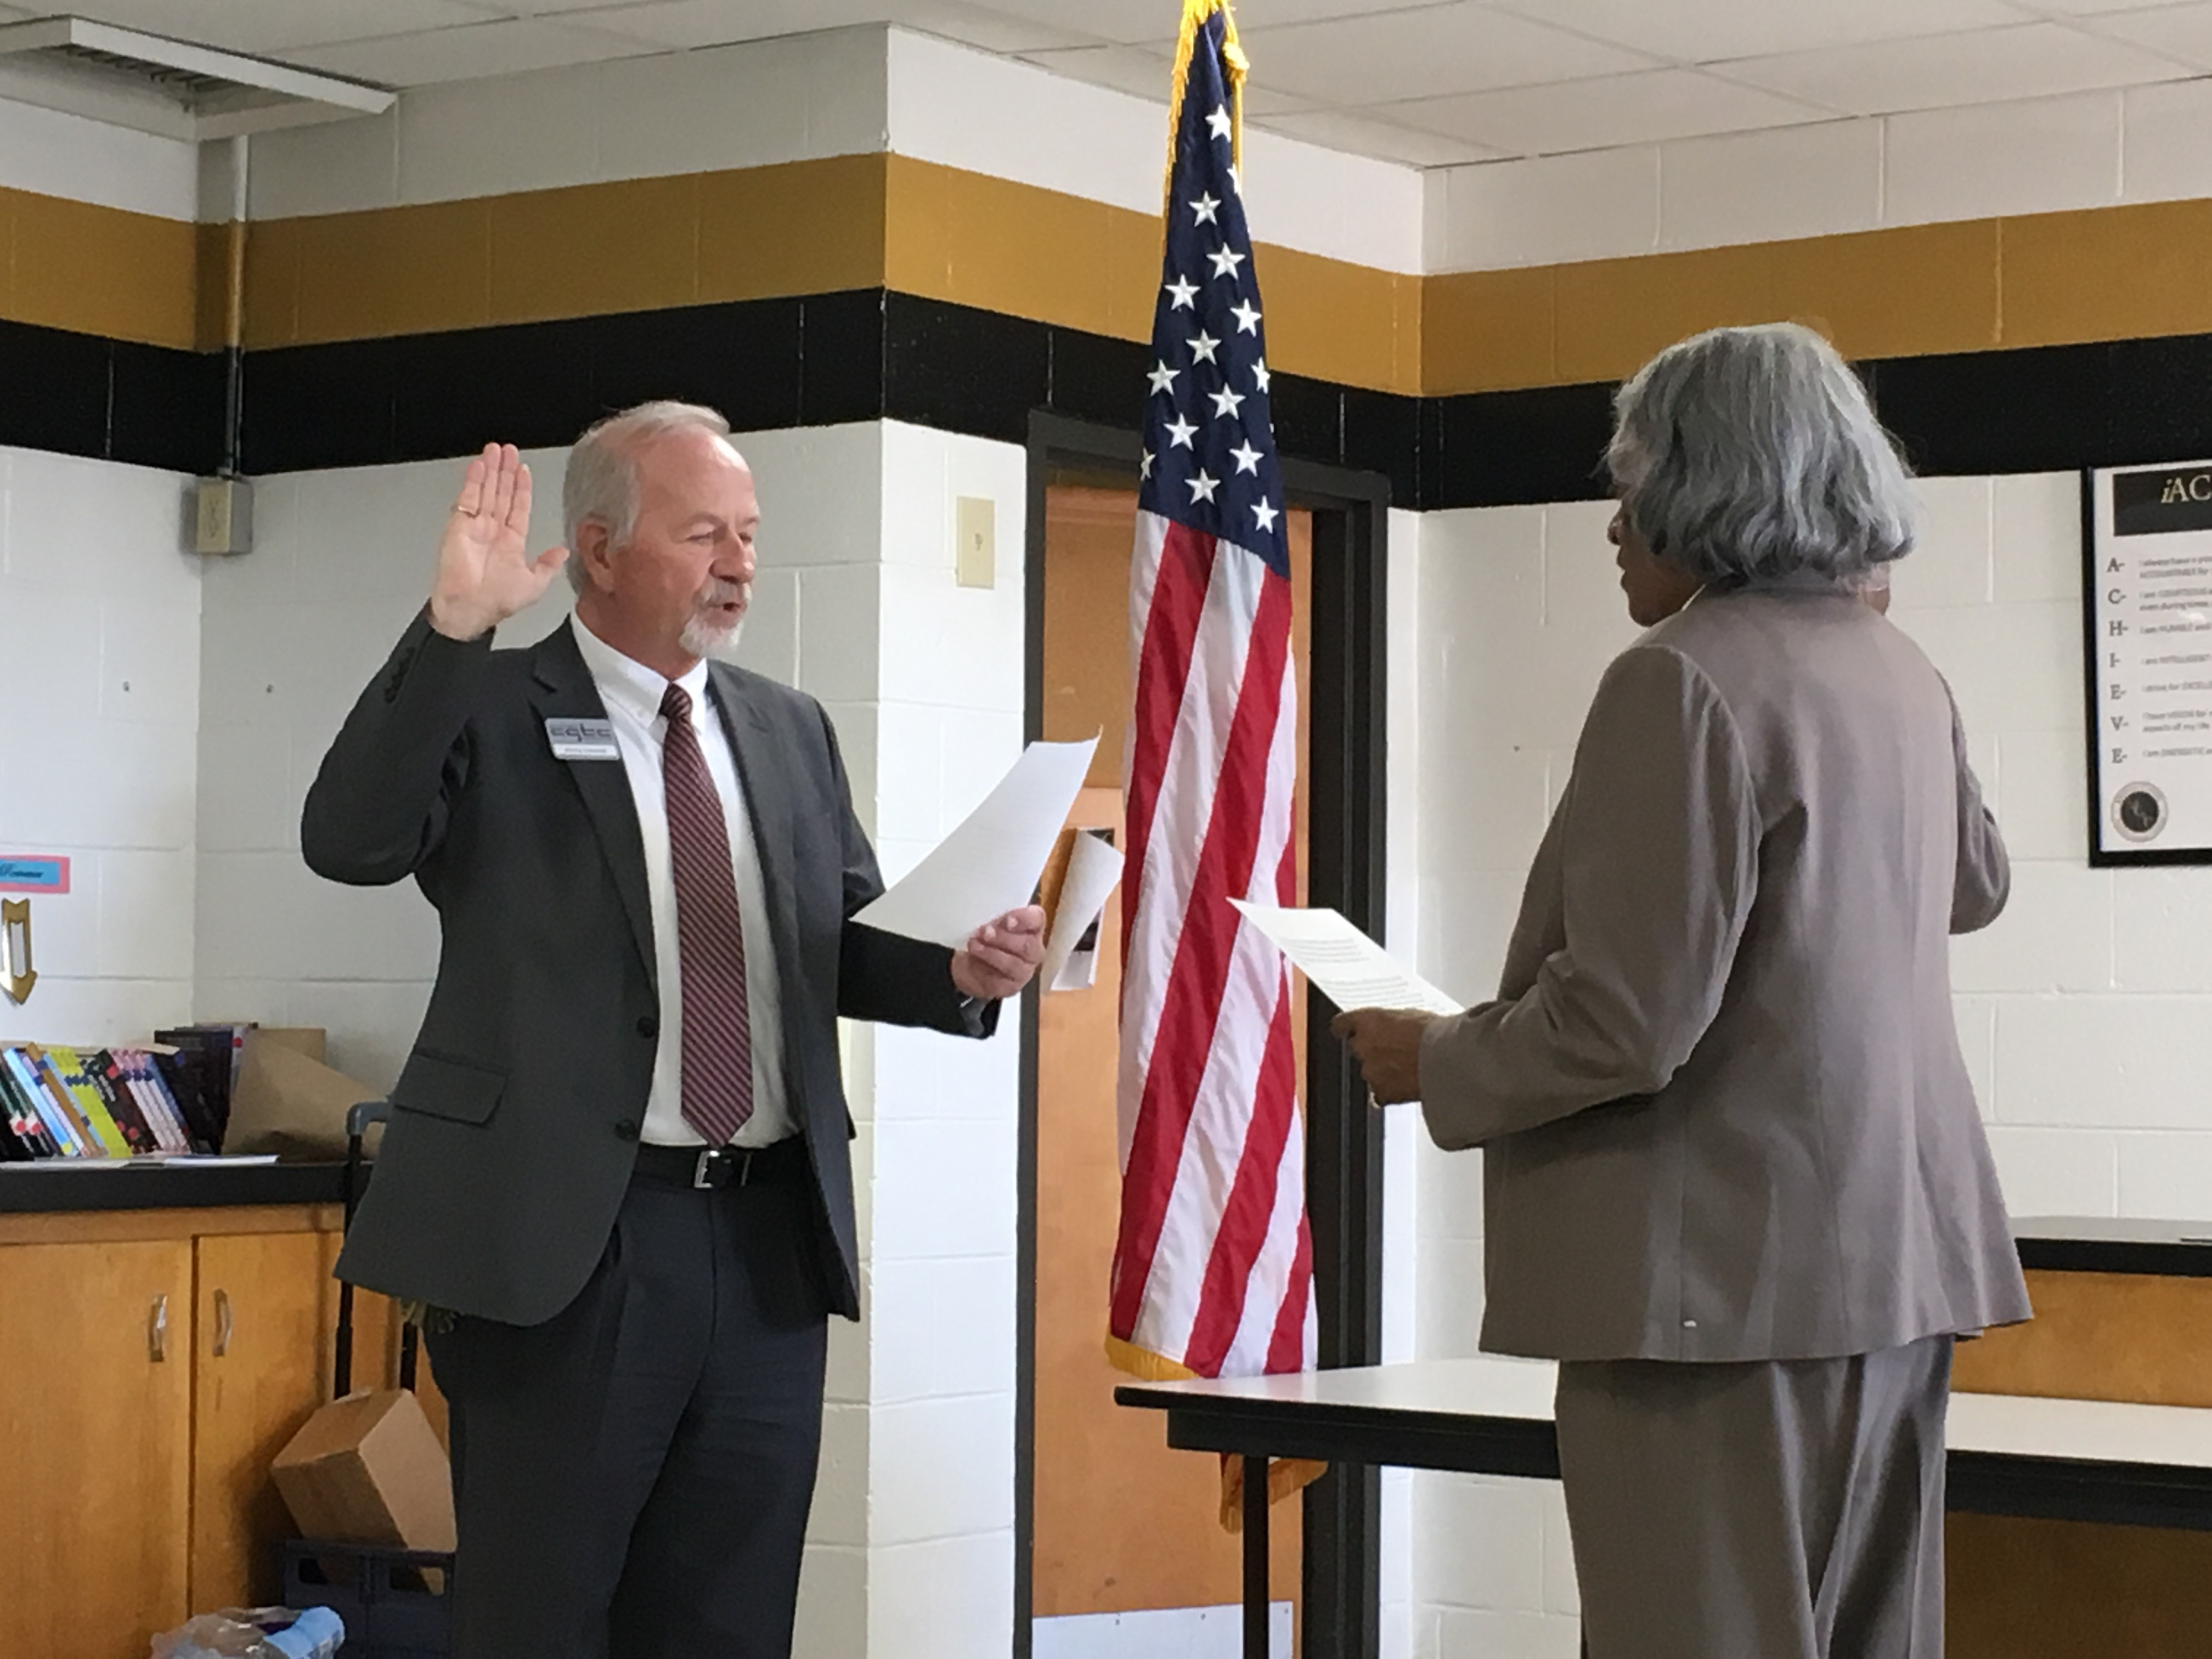 Assistant vice president of Facilities and Ancillary Services at CGTC, James Faircloth, swears in Rev. Dr. Avis Williams during the College's February Board of Directors meeting.